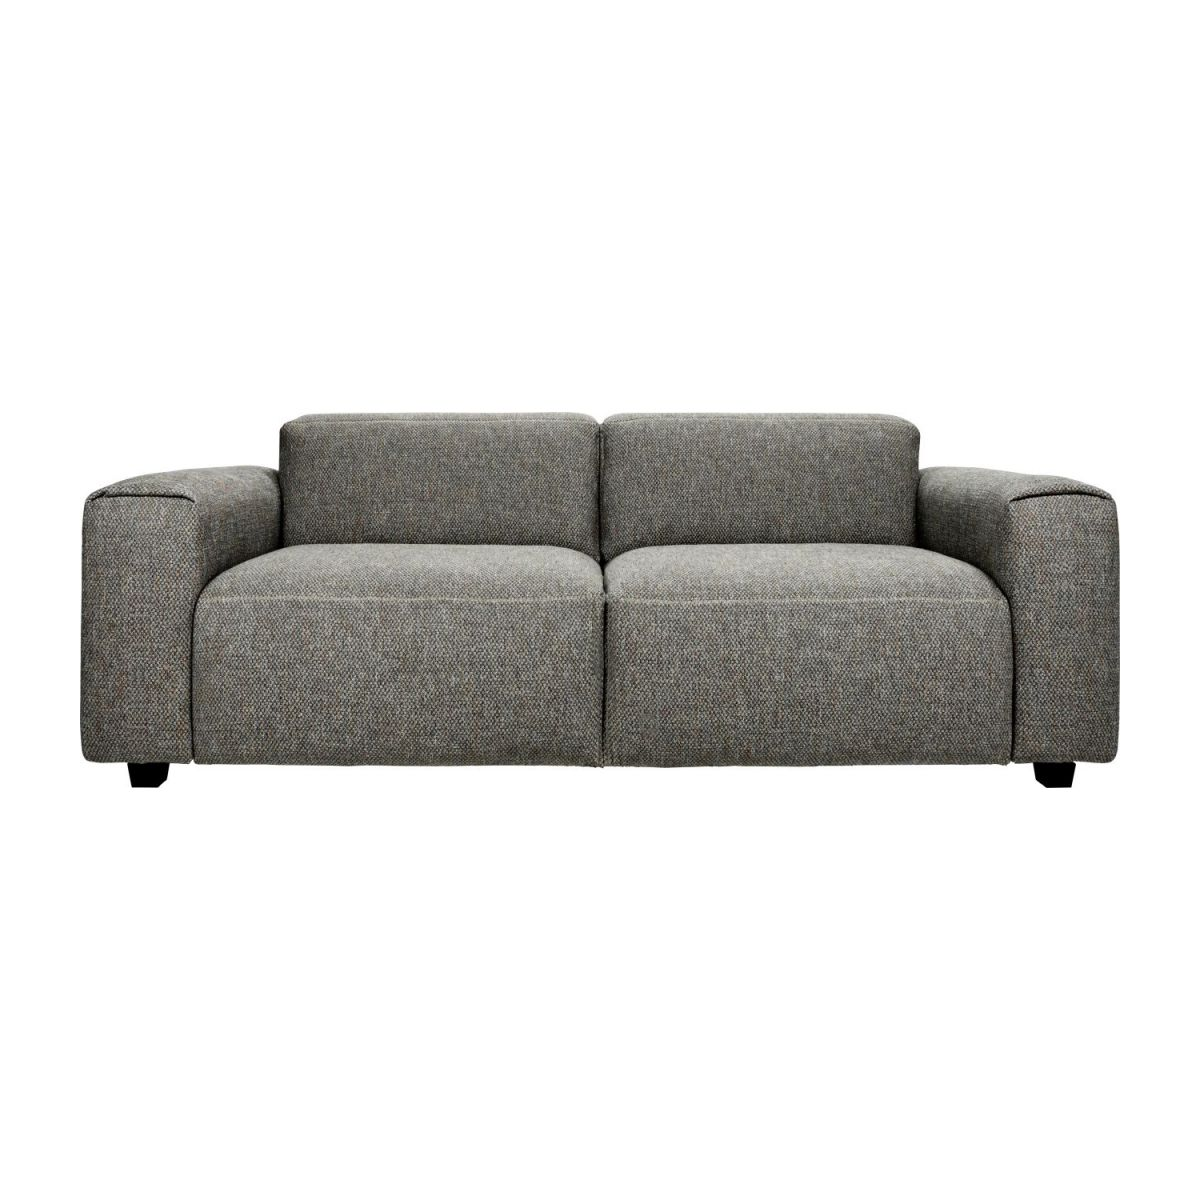 2-Sitzer Sofa aus Stoff Bellagio night black n°4